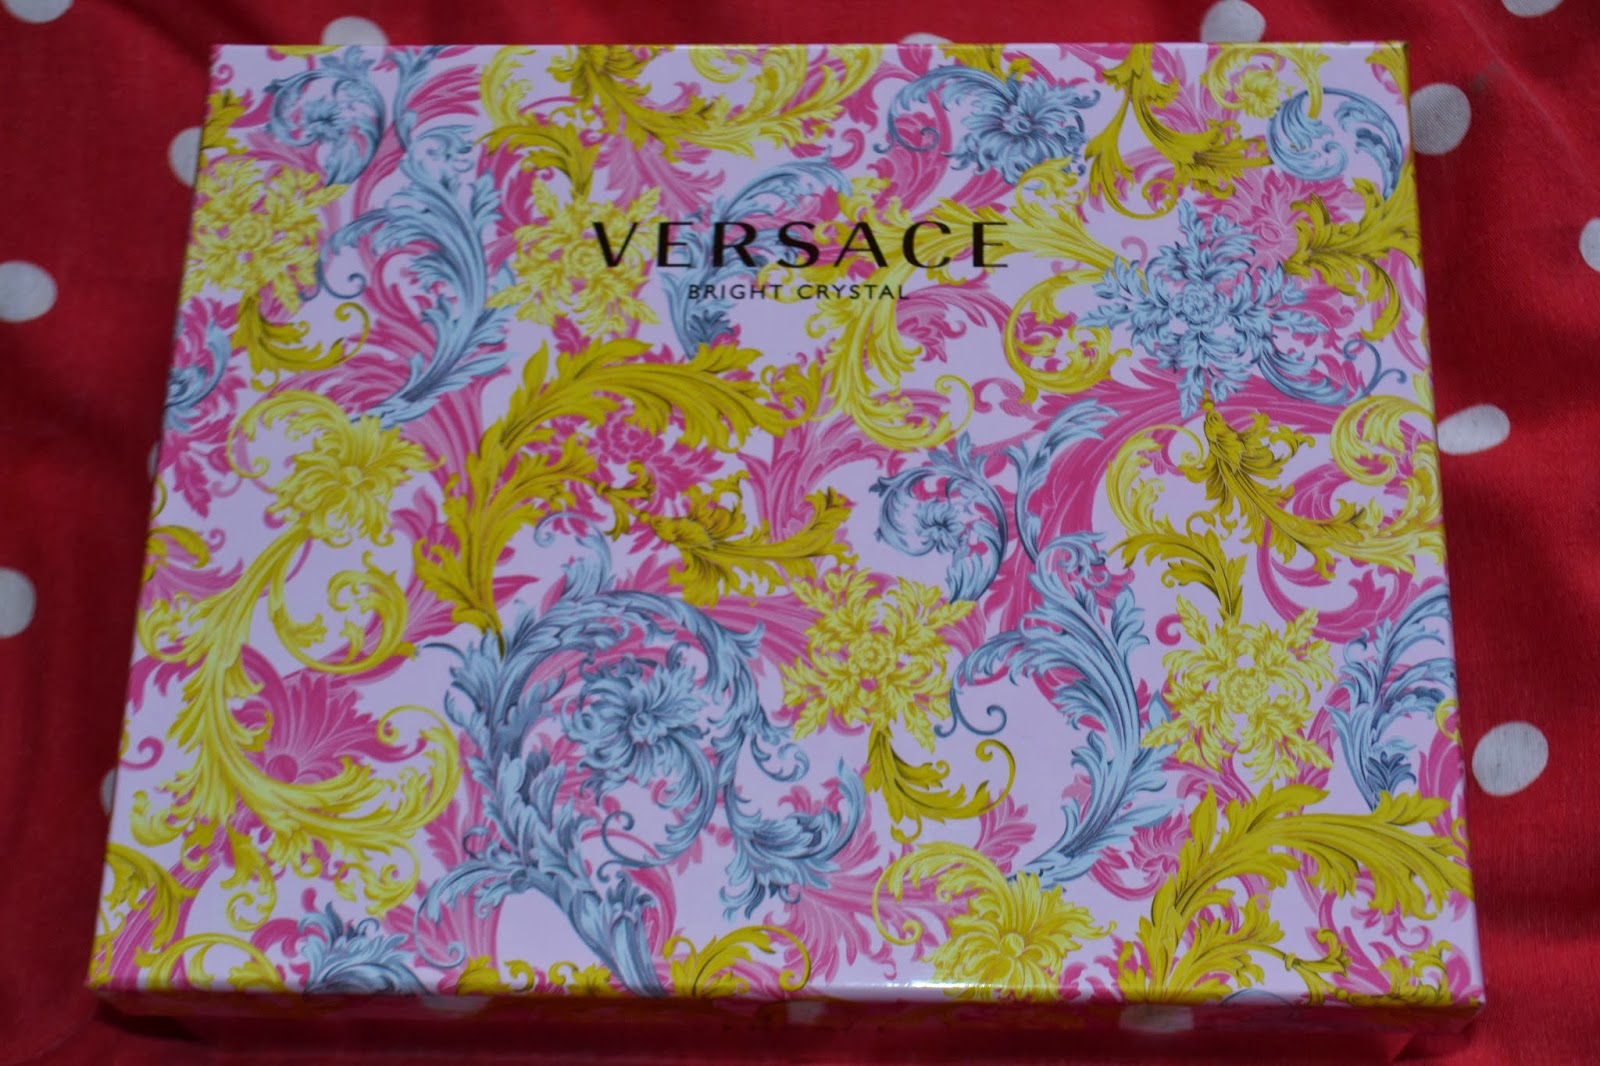 Decorative Boxes Tk Maxx : Forevermissvanity a uk lifestyle ger versace